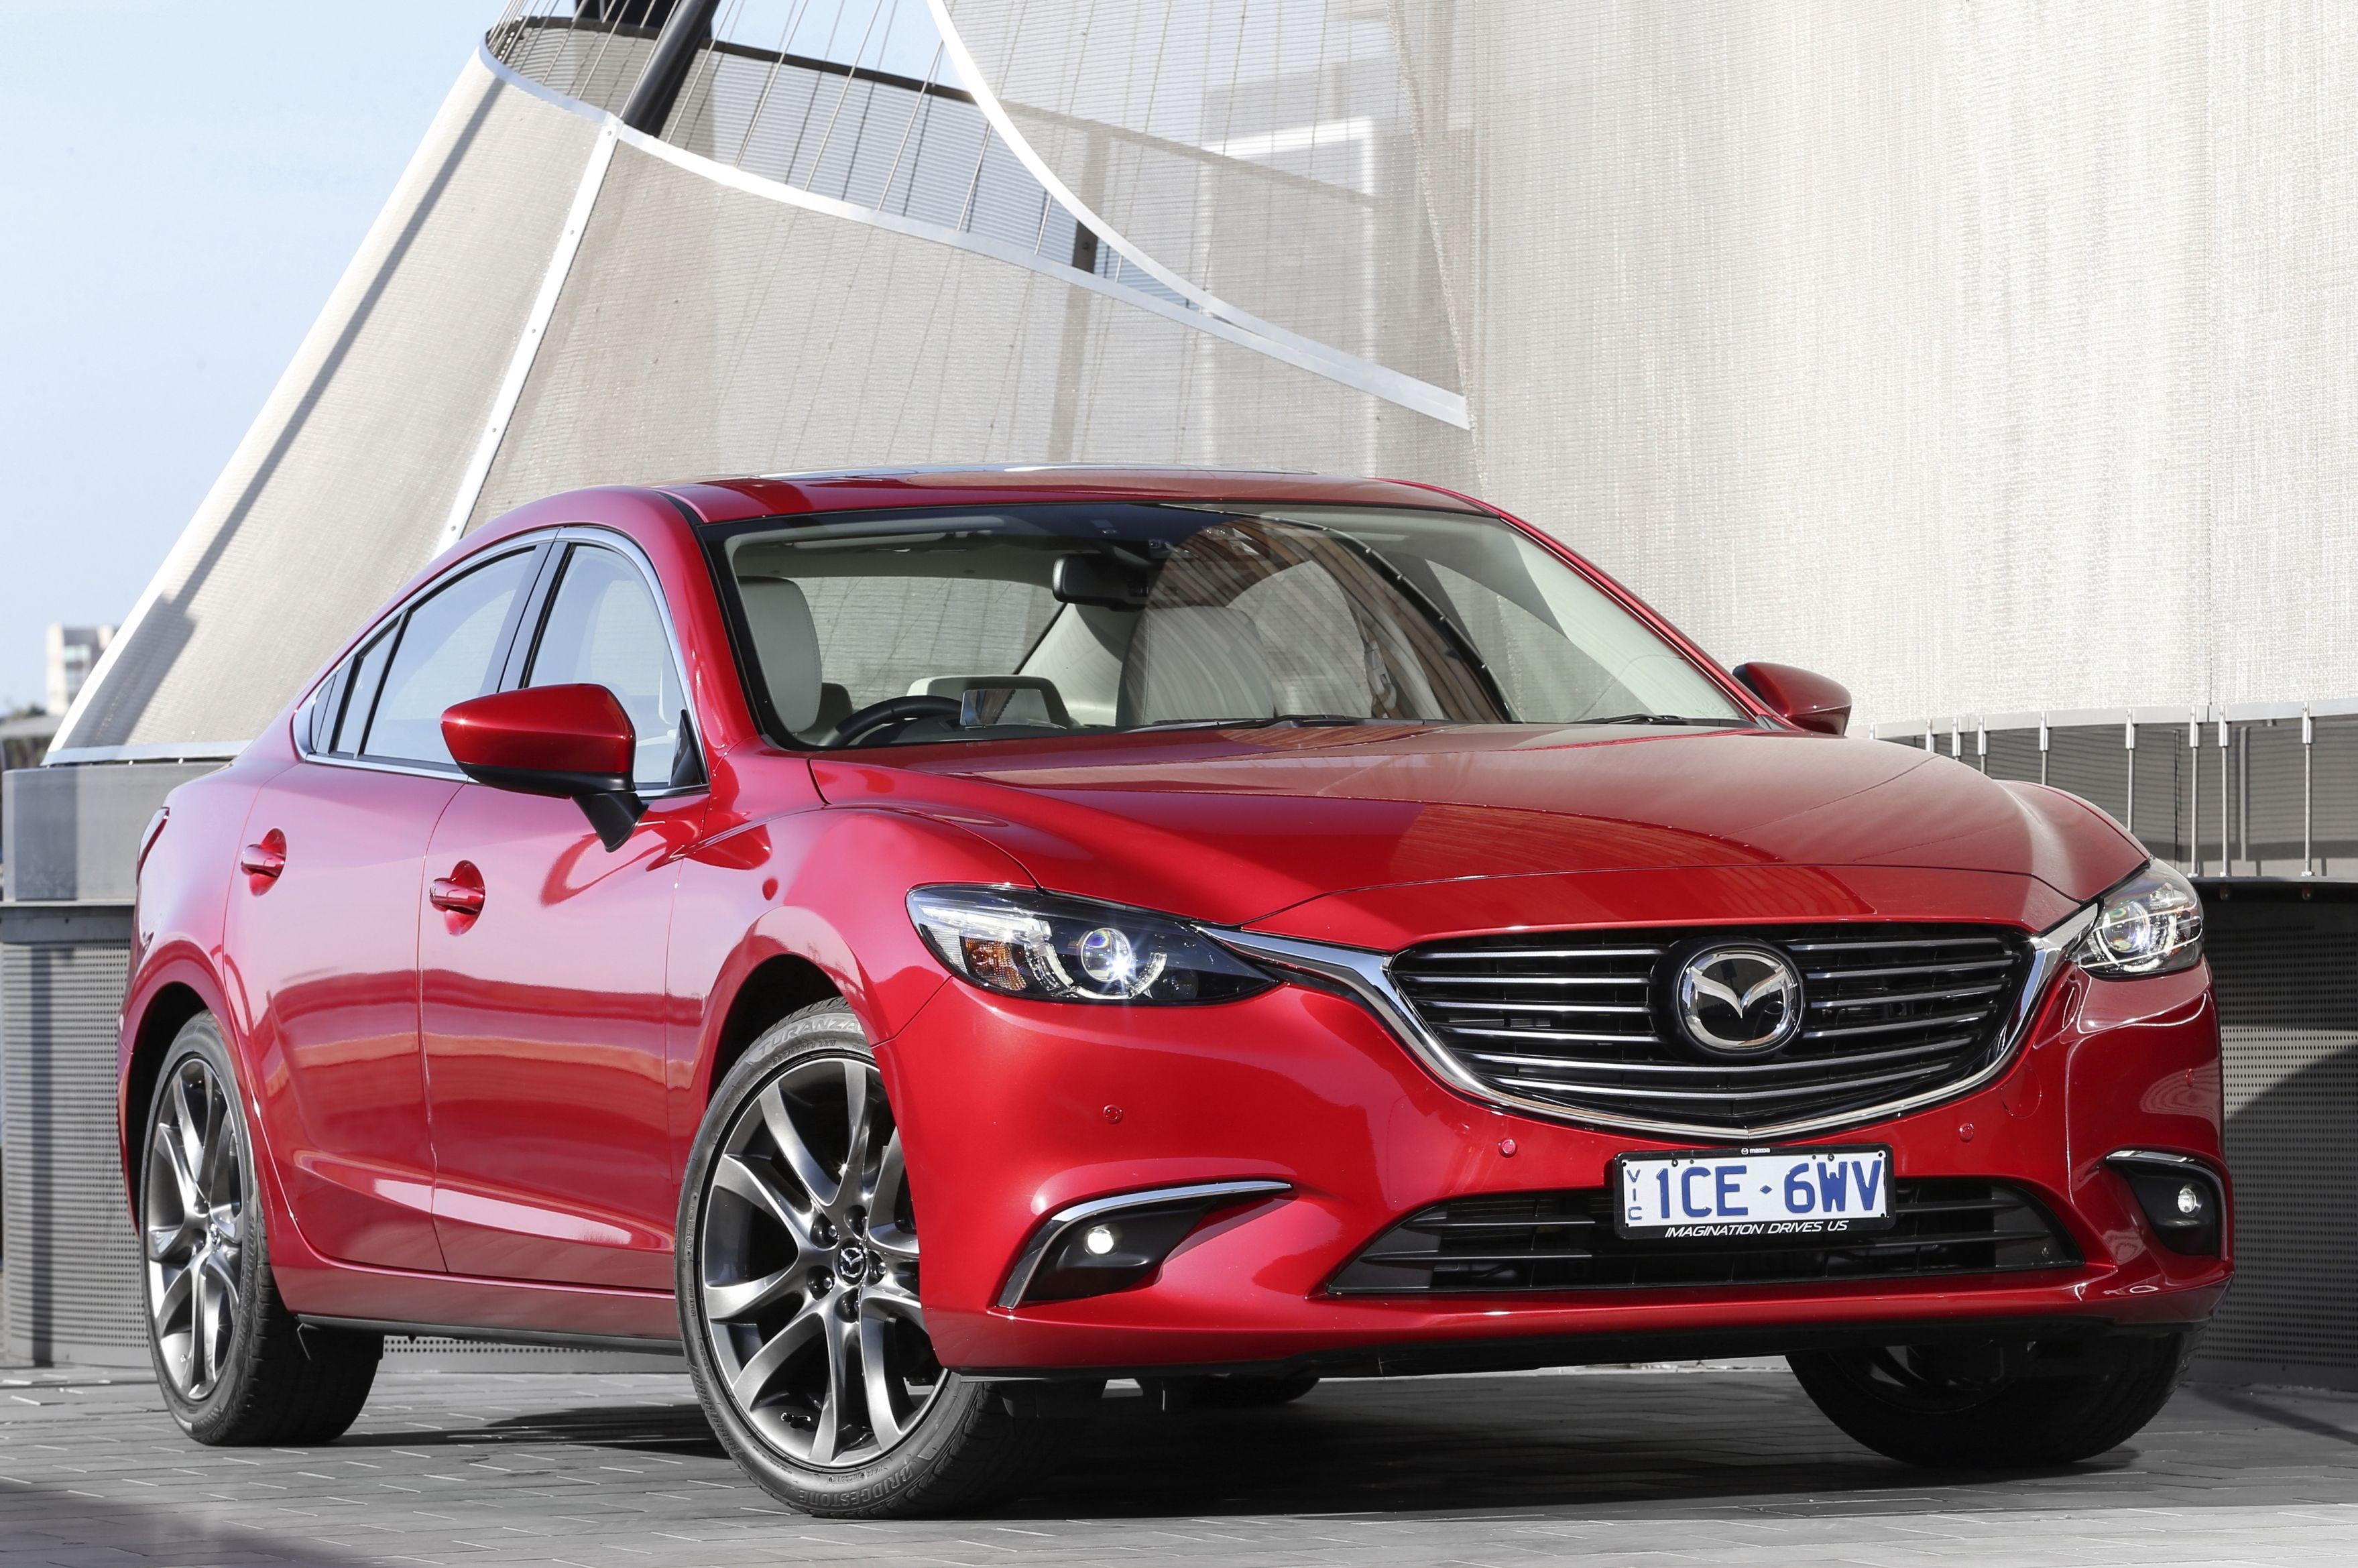 2015 Mazda 6 Wallpaper for Desktop #9318 - Rimbuz.Com